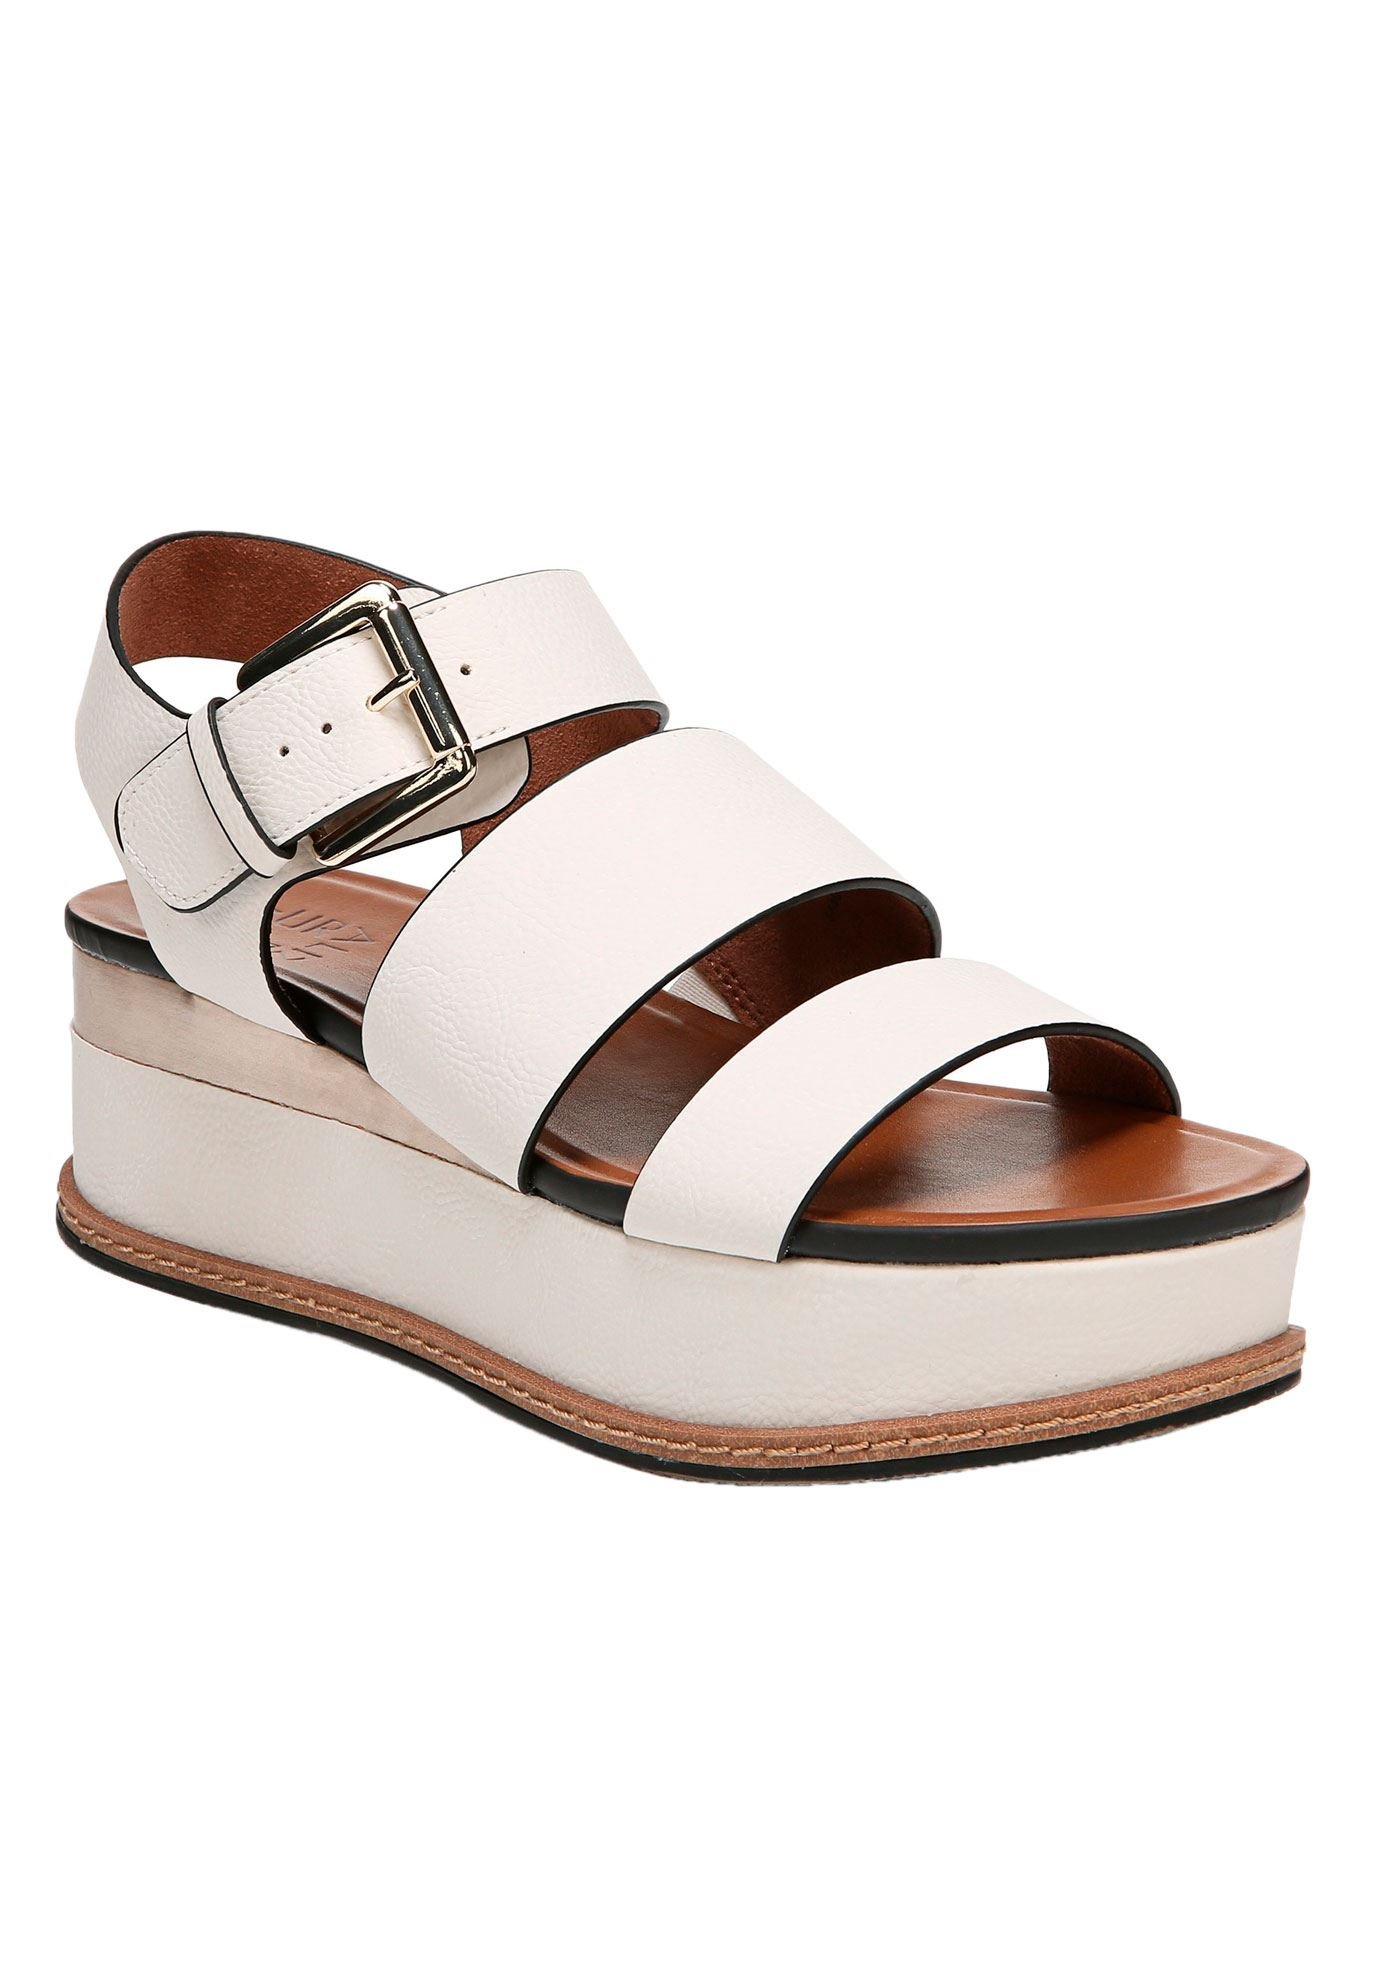 Billie Sandals by Naturalizer®,